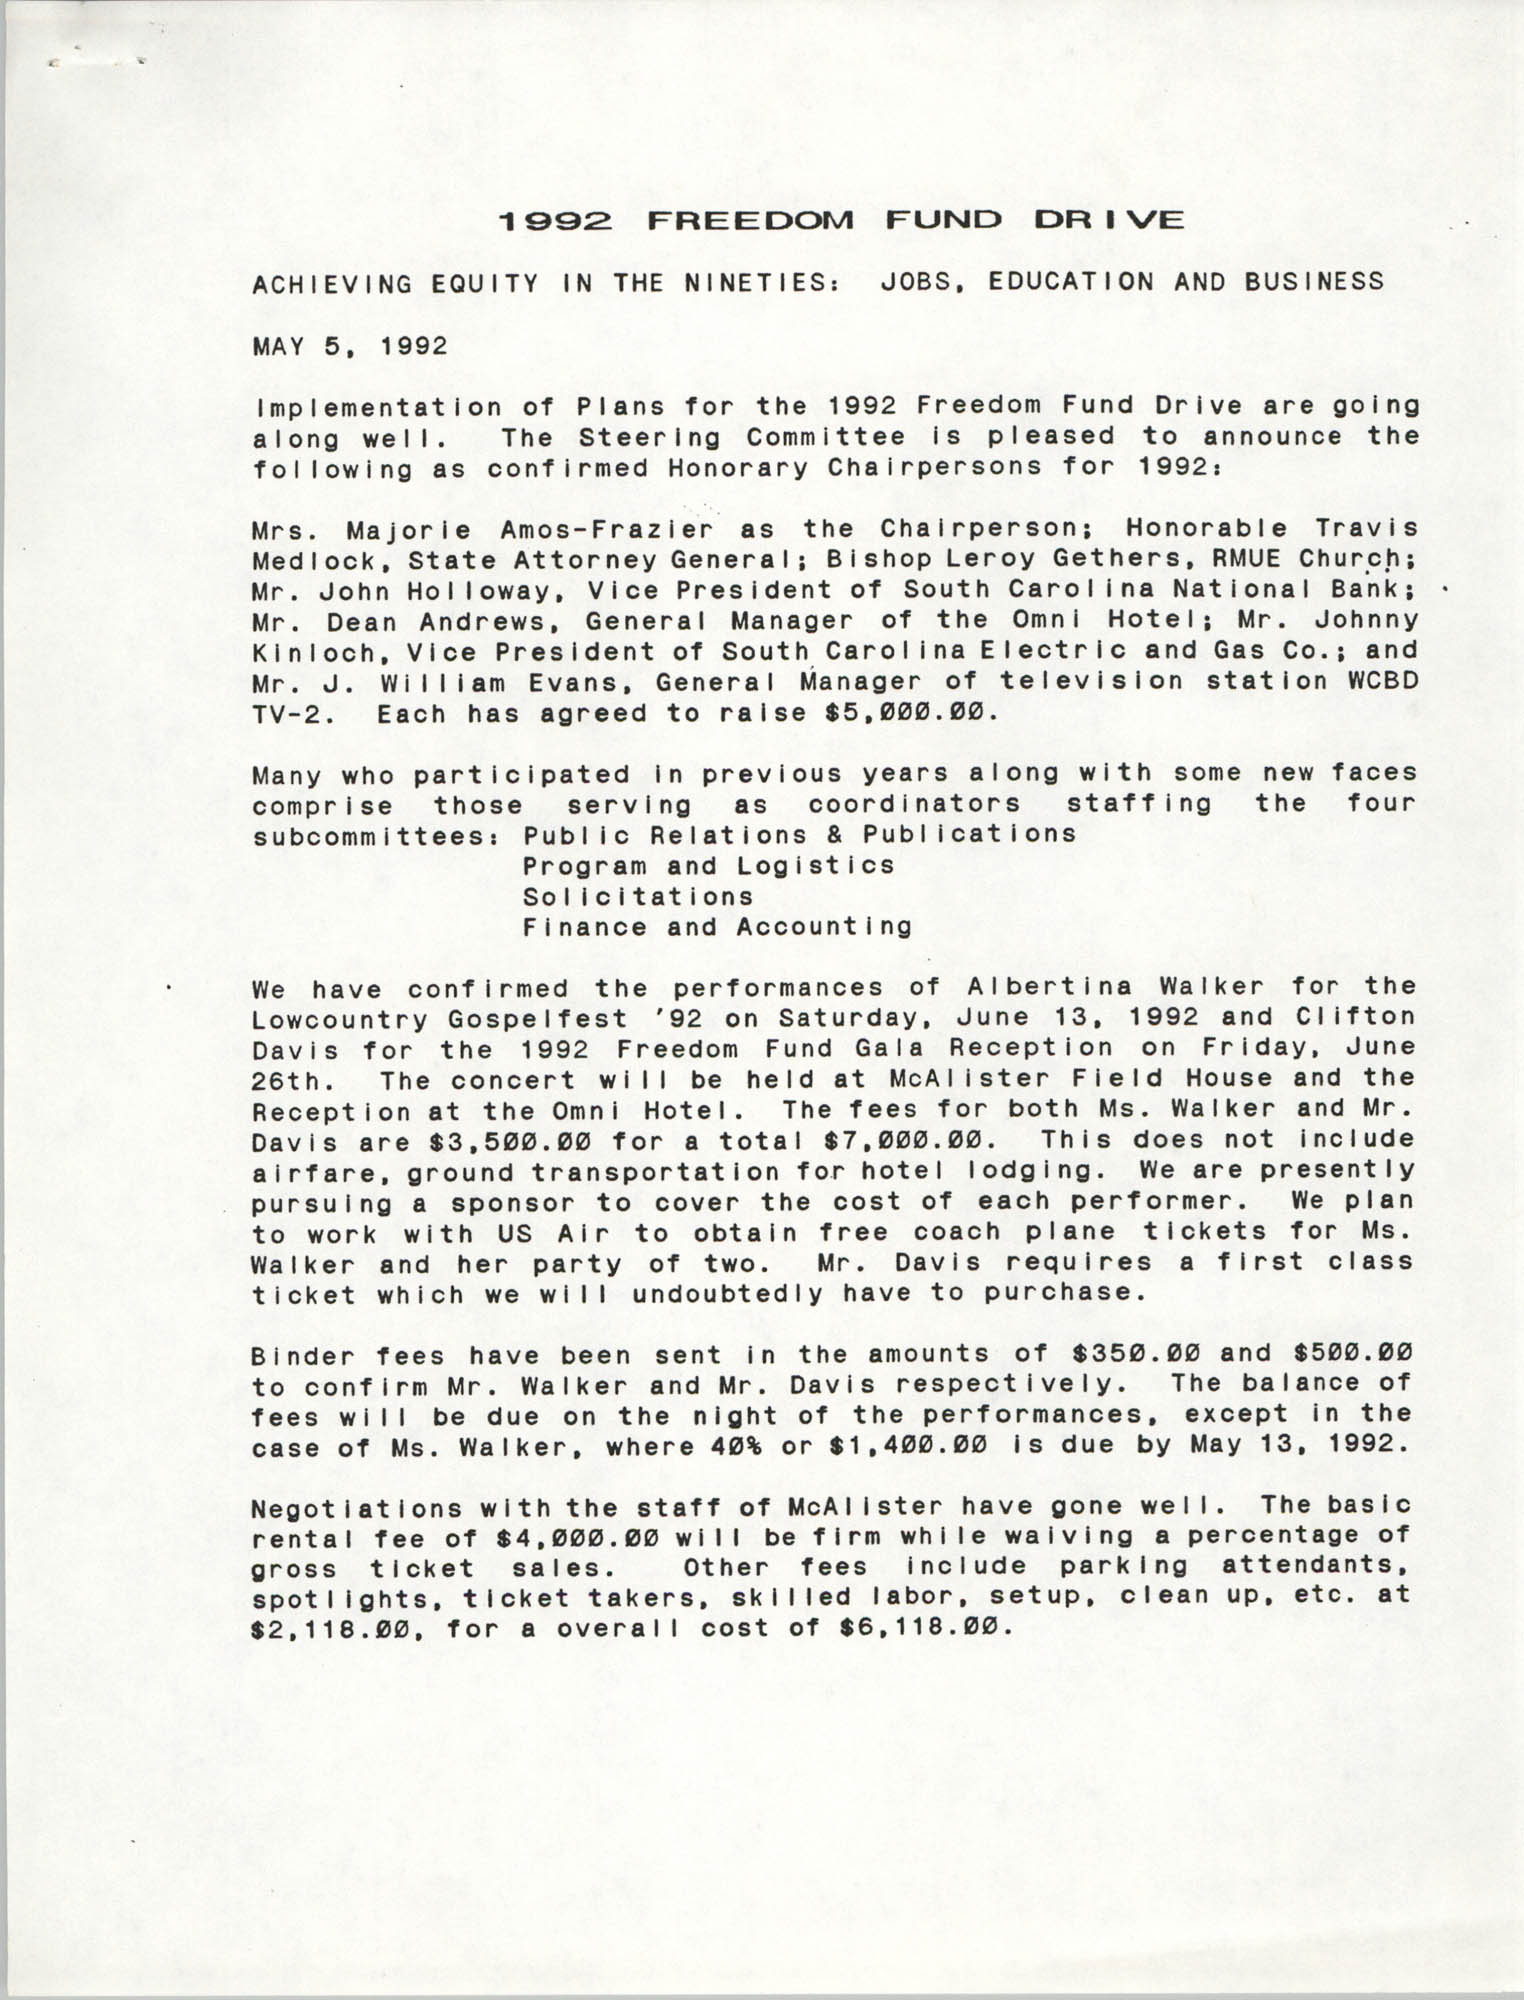 Report, Freedom Fund Drive, Dwight James et. al, May 5, 1992